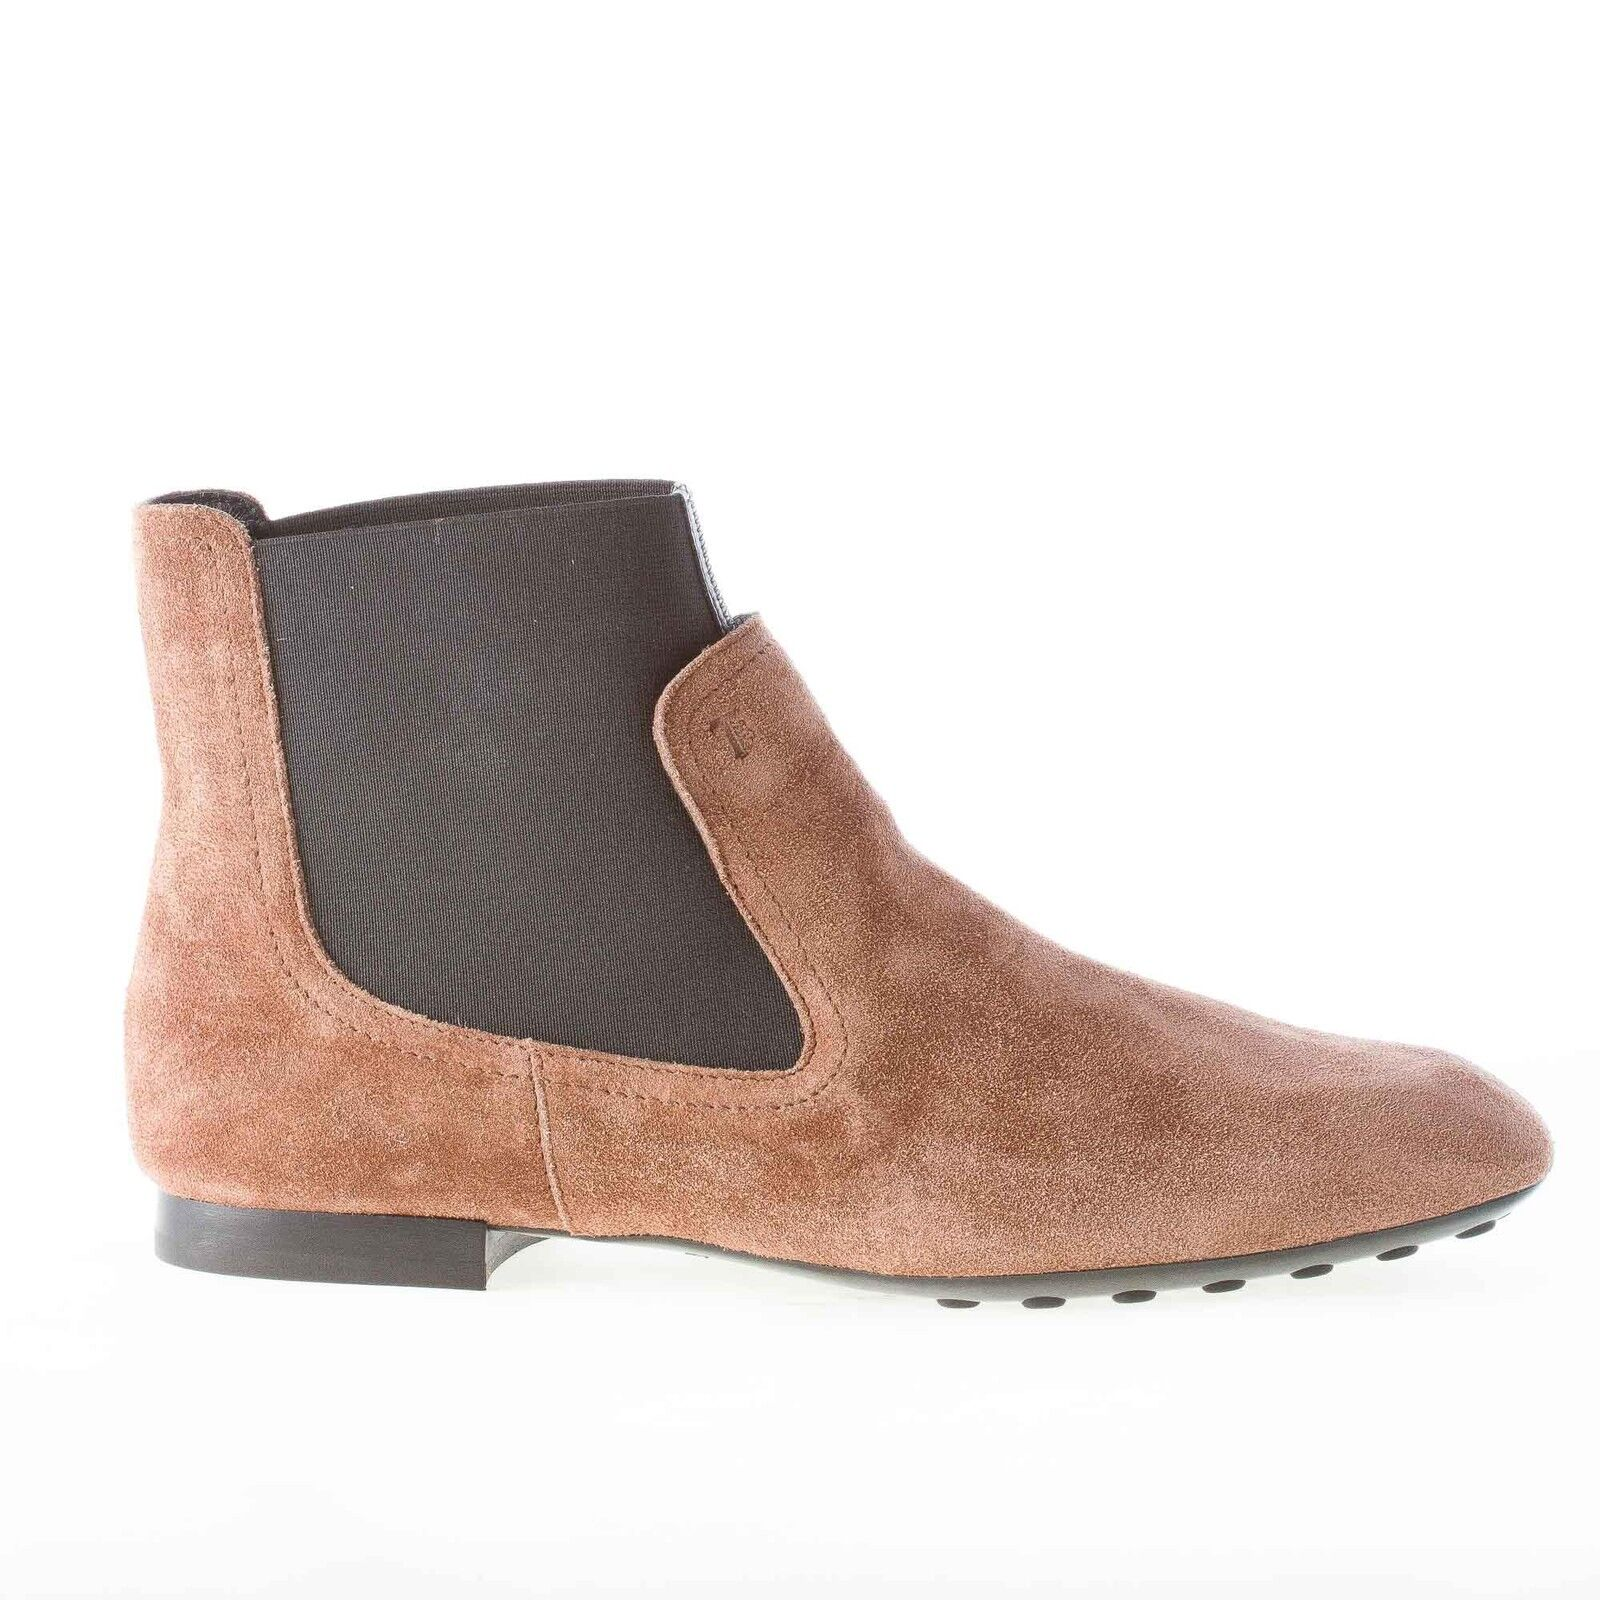 TOD'S damen schuhe shoes Brown suede flat ankle boot elasticized black band